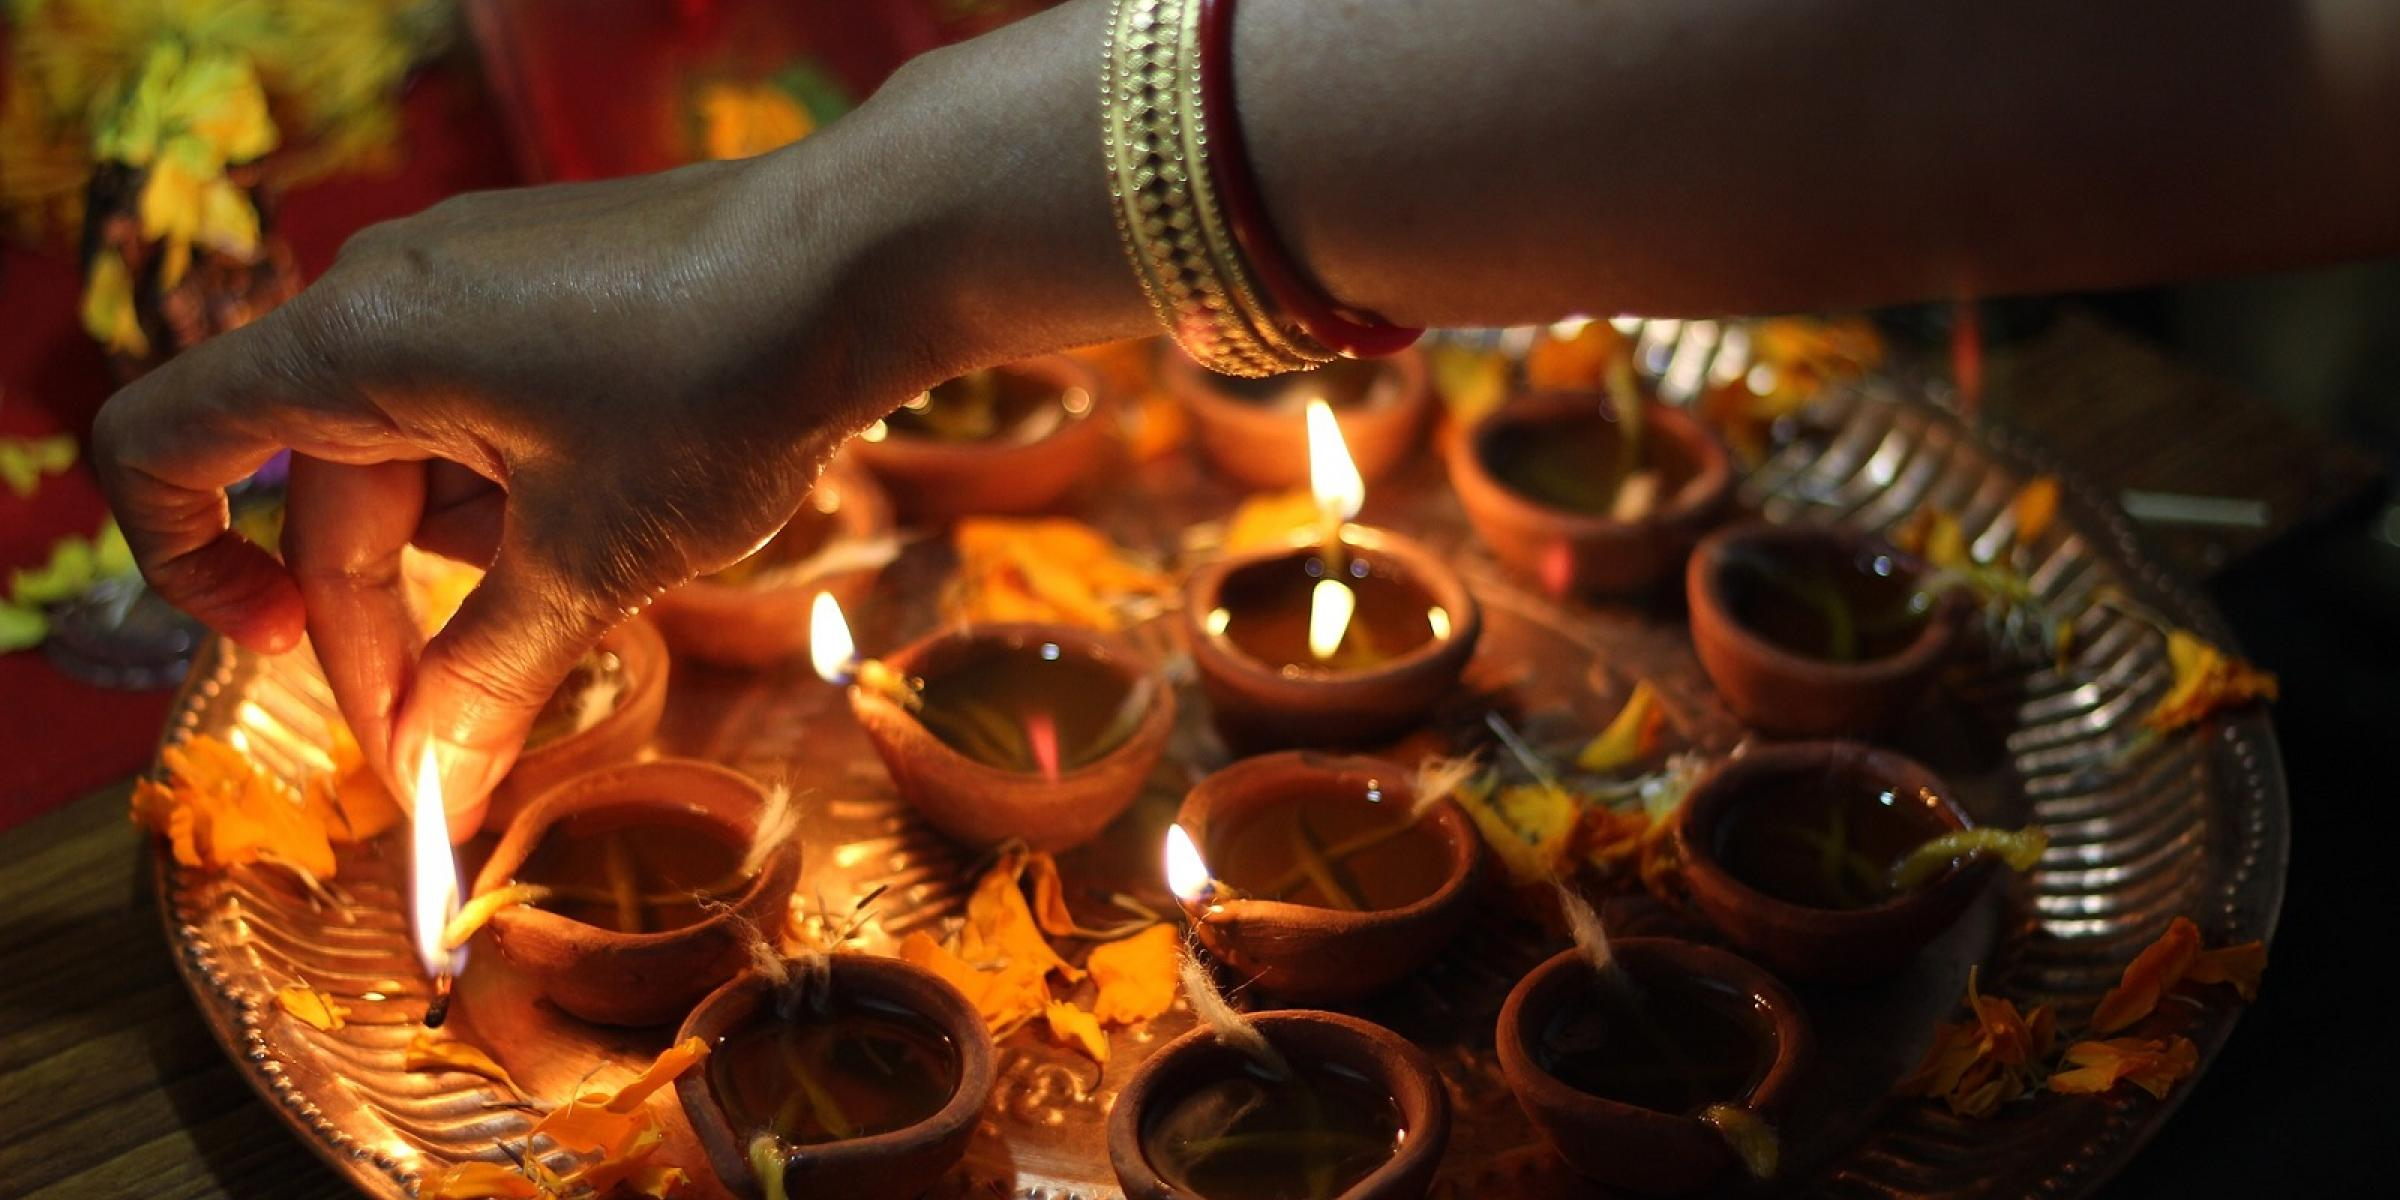 Lighting candles for Diwali